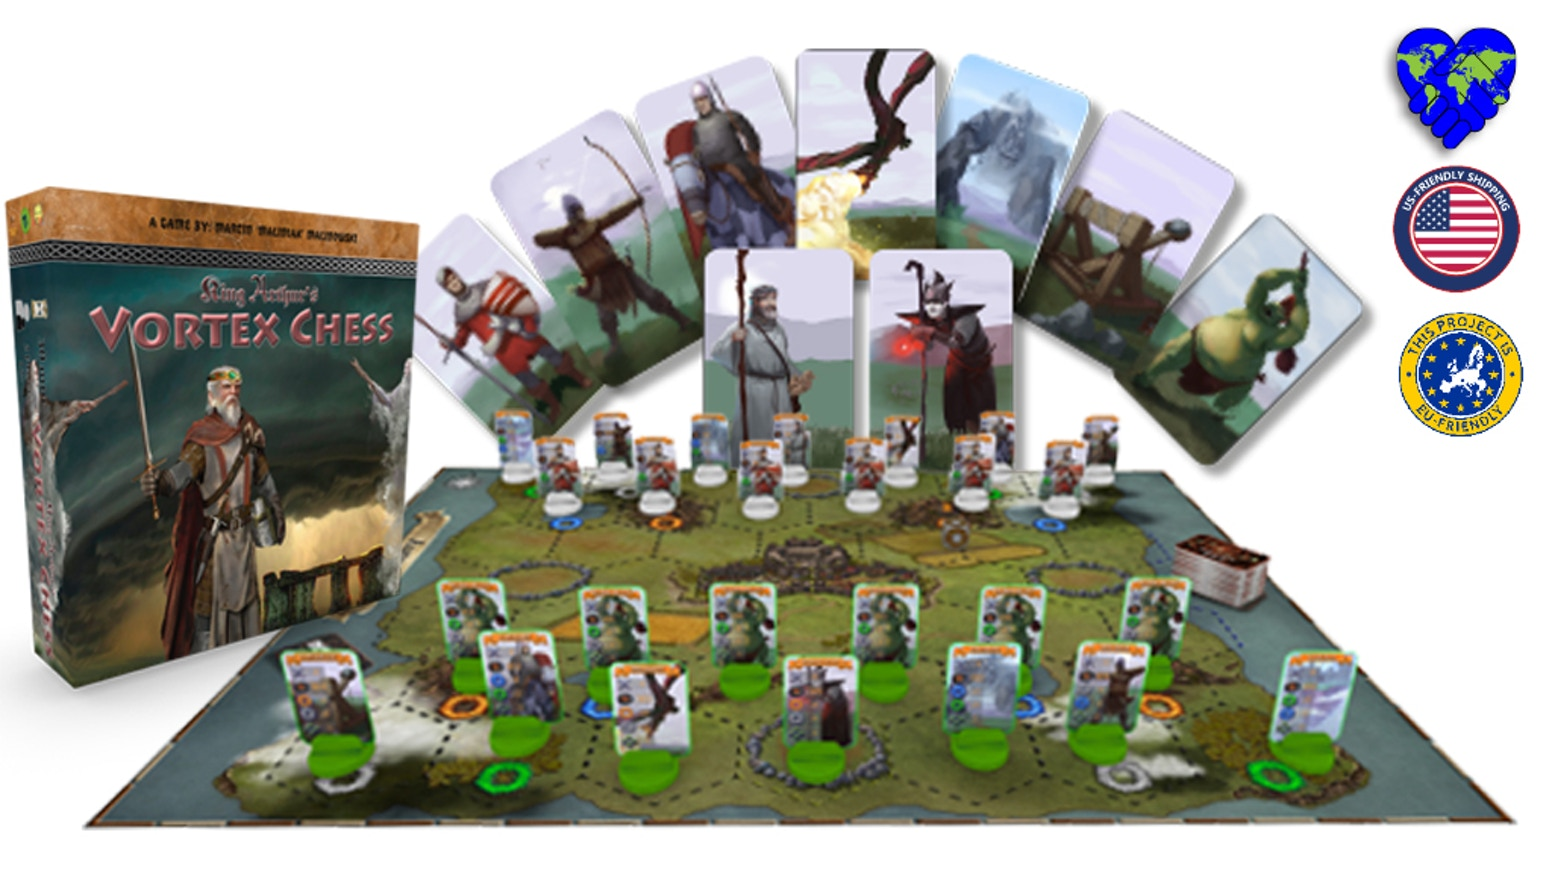 Vortex Chess is a tactical Chess-like game, set in Arthurian Mythology. Merlin Ambrosius defending Camelot against Medraut ap Lot.